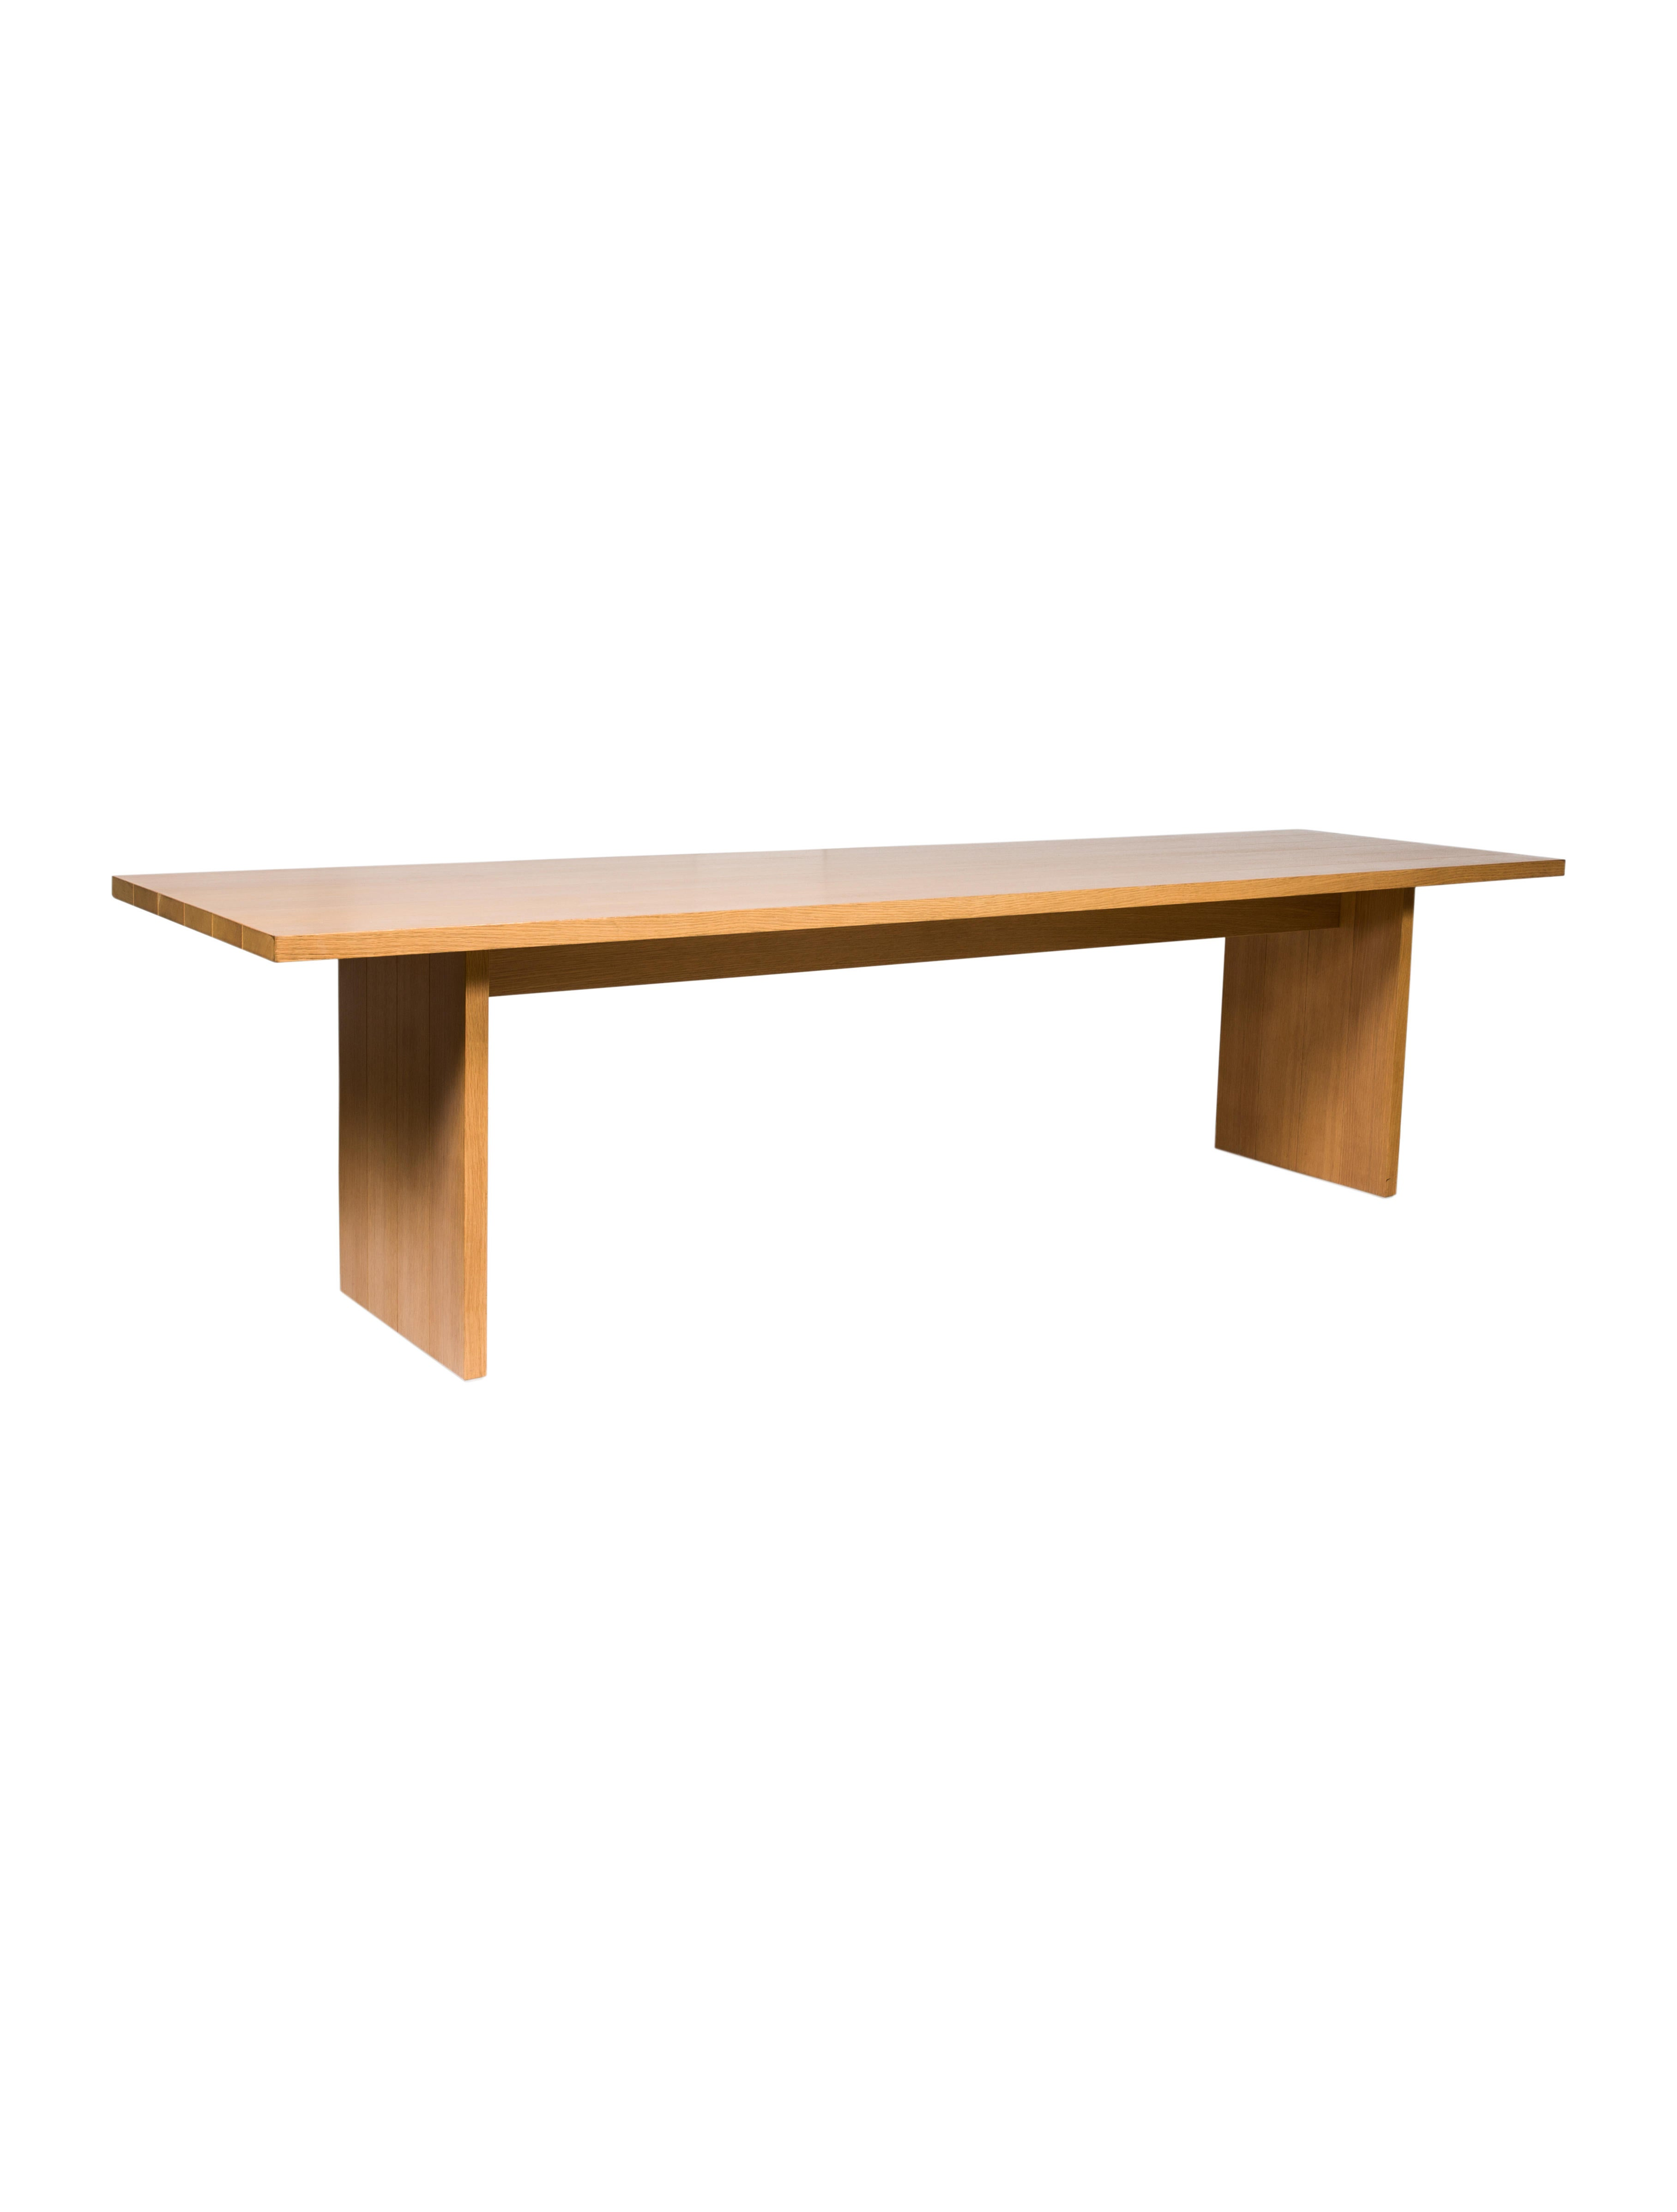 Arclinea Oak Dining Table Furniture ARCLN20003 The  : ARCLN200032enlarged from www.therealreal.com size 3632 x 4791 jpeg 211kB